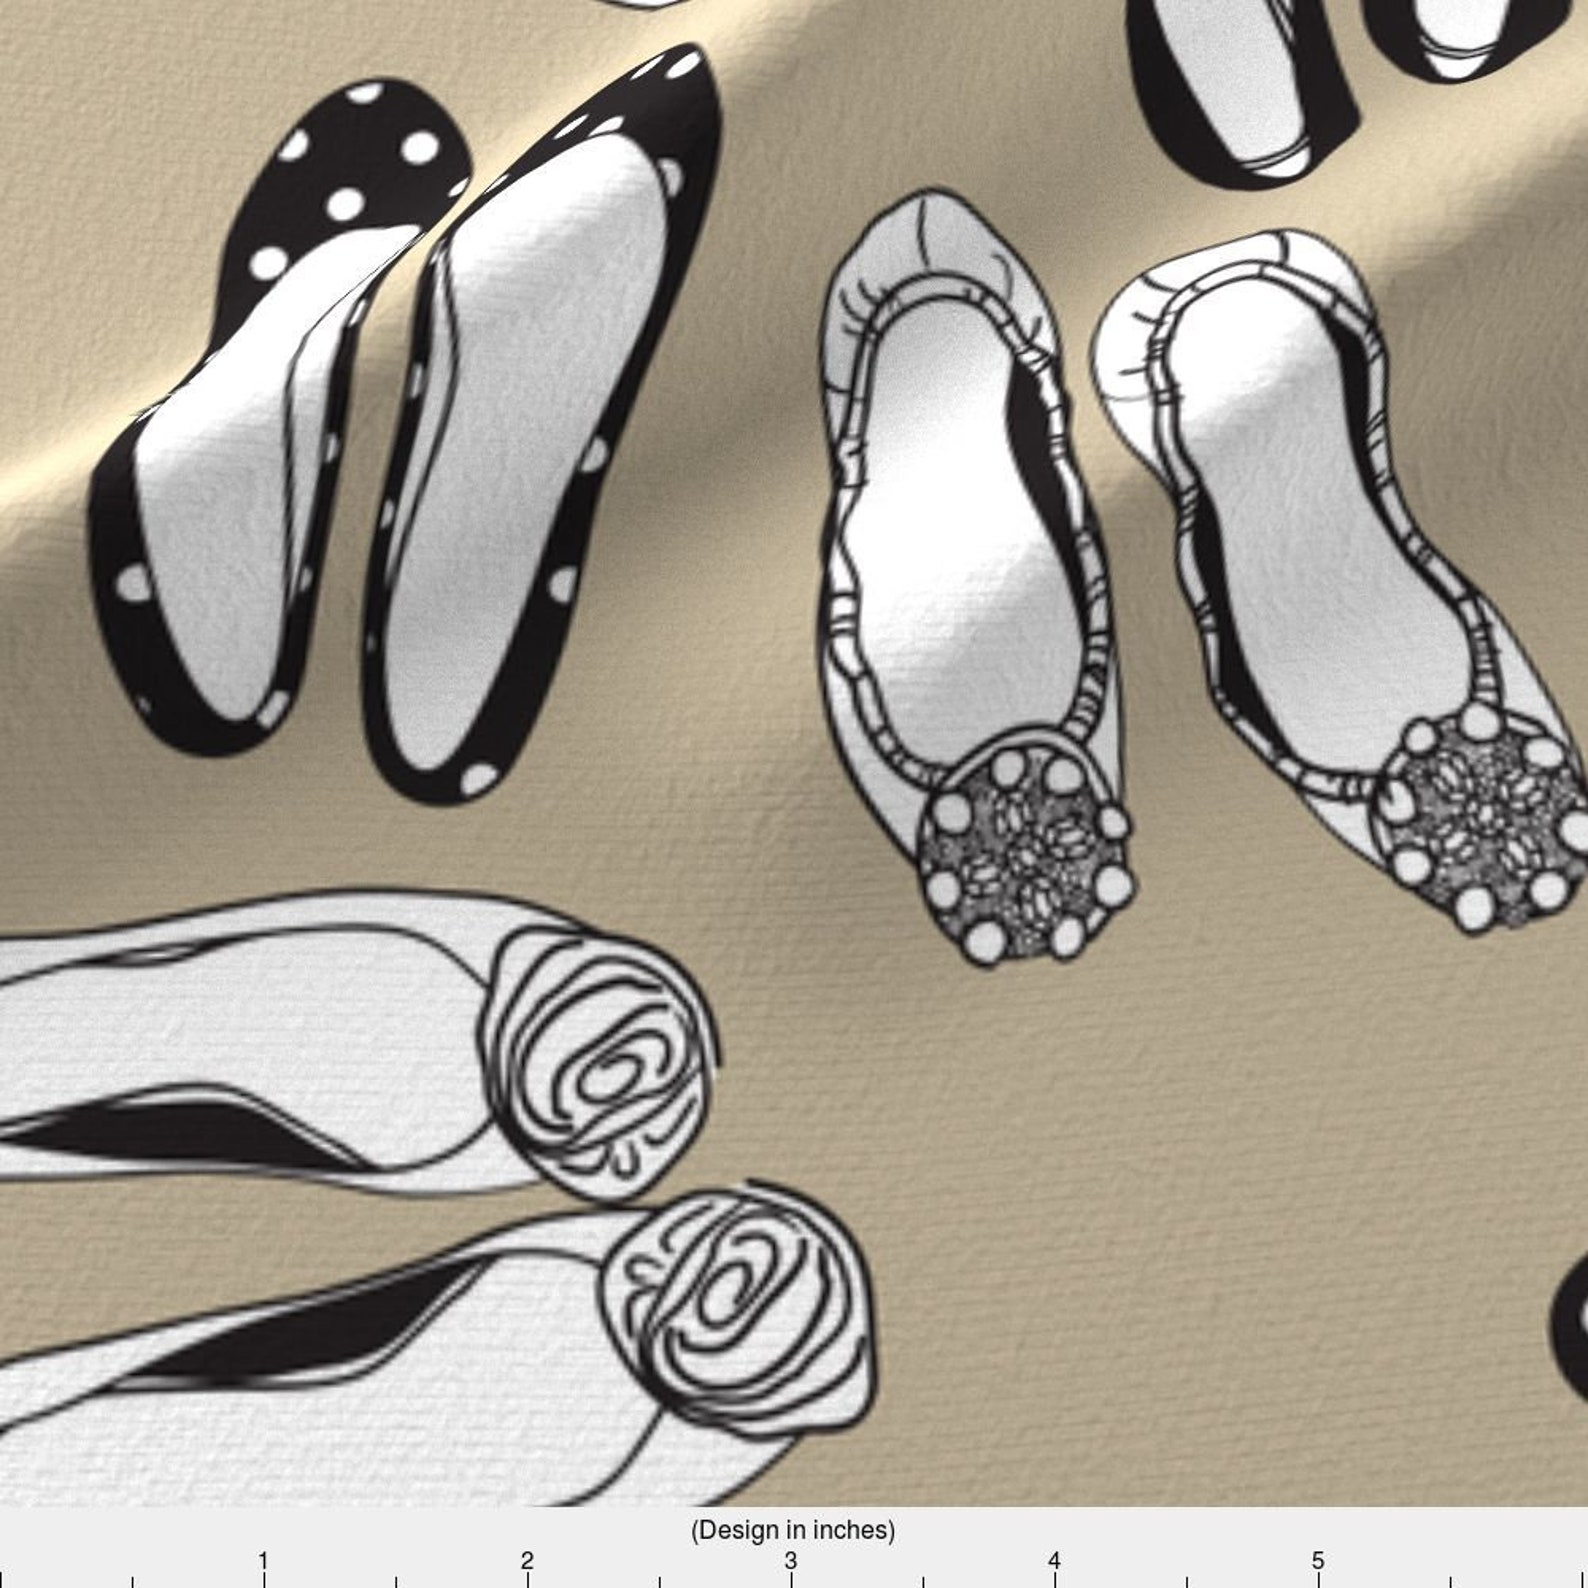 shoes fabric - ballet flats gray by winksmile - ballet flat fashion home decor cotton fabric by the yard with spoonflower